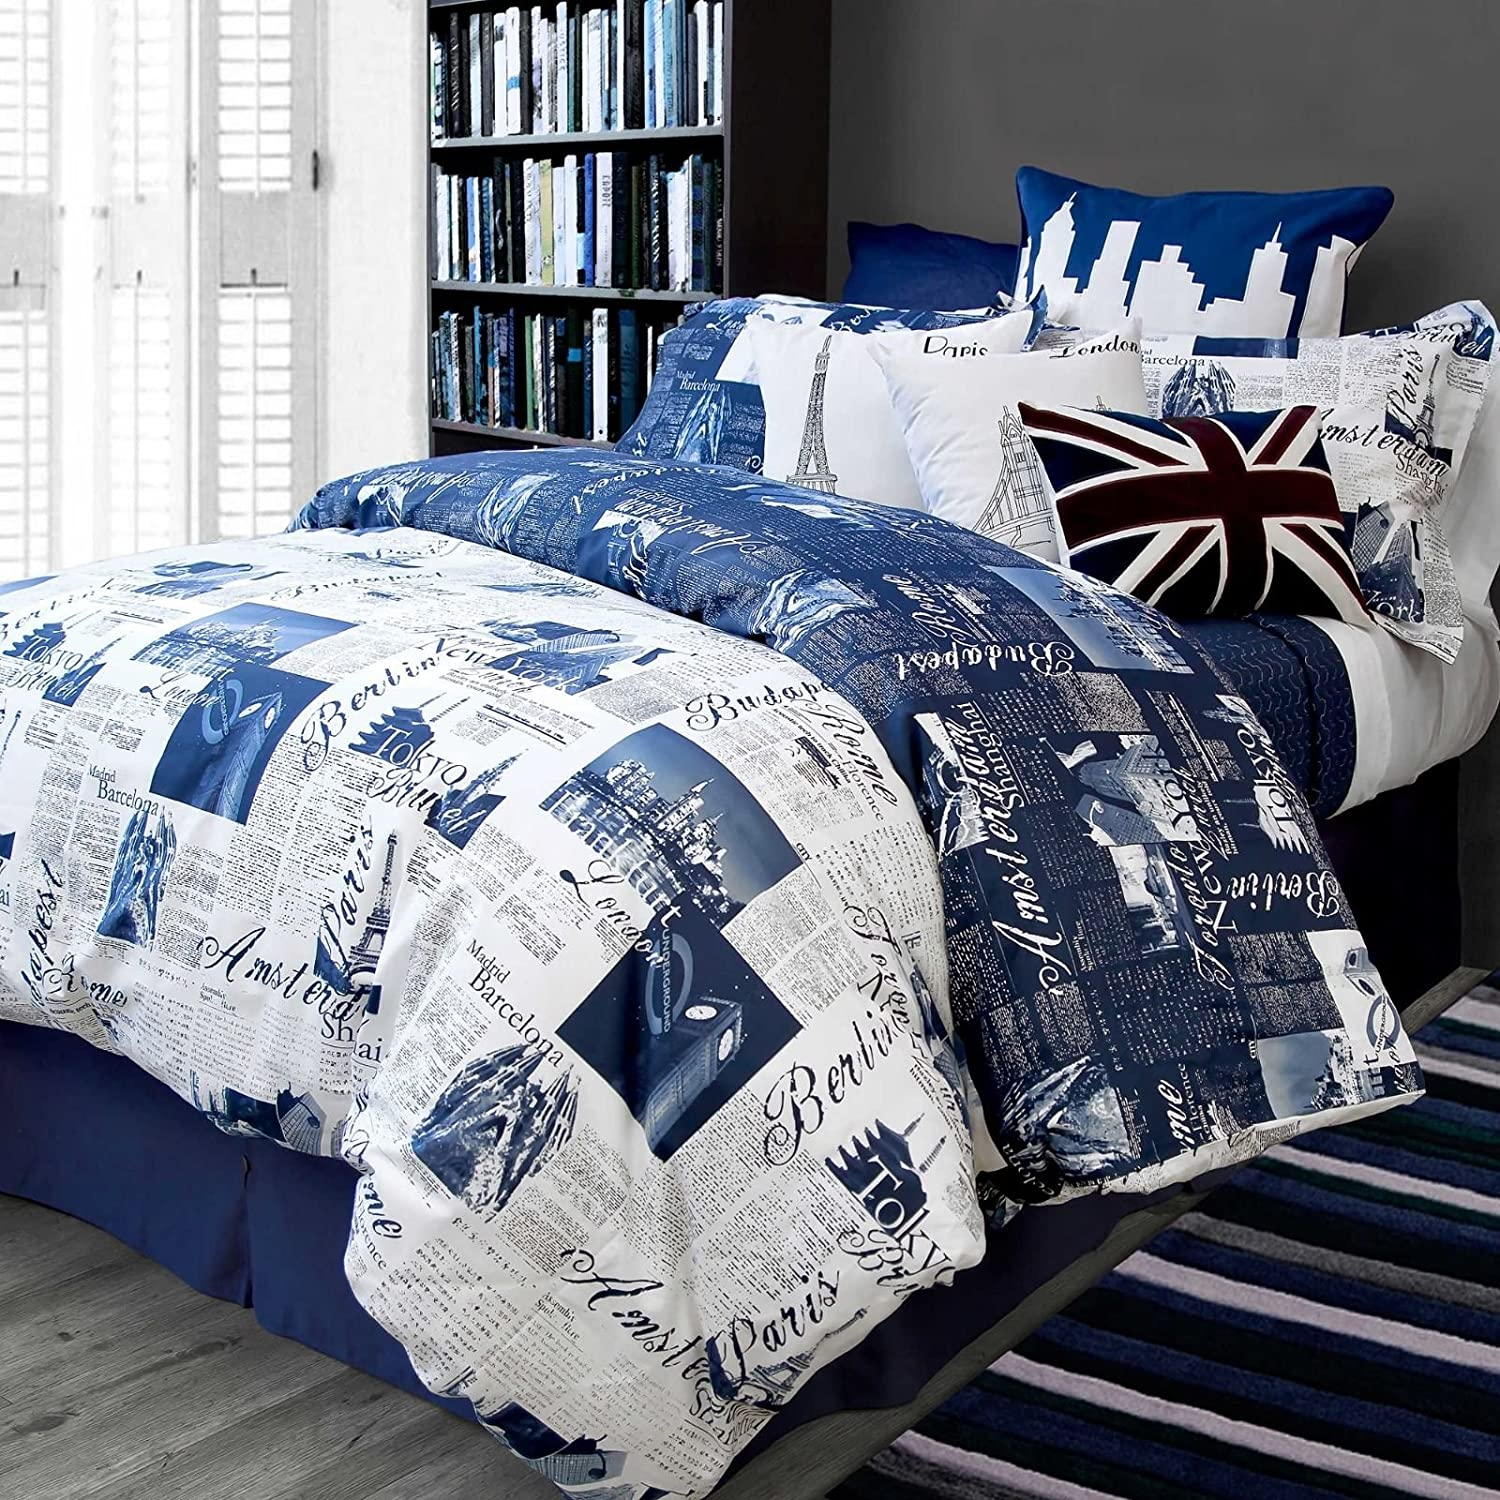 boys know designs bed a of boy set blanket duvet full joules sets blue bag atzine excited single ddler about ter quilt wanted linen queen size childrens sheets comforters designer bedroom sheet little you bedding rugby kids teen properly comforter pri striped to double twin everything